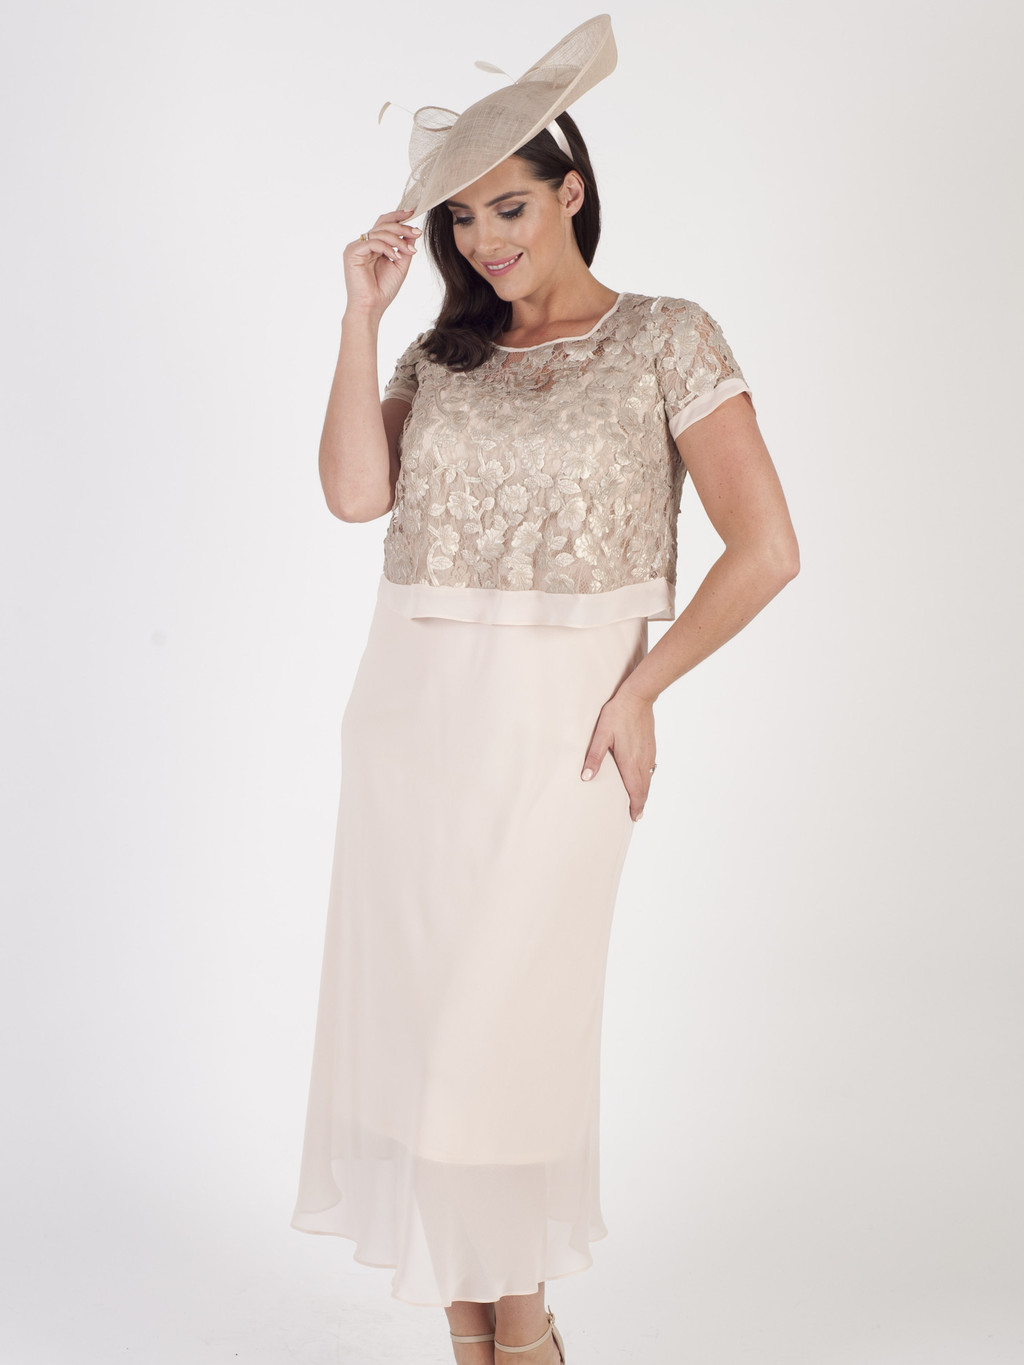 Blush Trellis Appliqué Lace & Chiffon Dress - style: shift; length: calf length; pattern: plain; predominant colour: ivory/cream; occasions: evening; fit: body skimming; fibres: polyester/polyamide - mix; neckline: crew; sleeve length: short sleeve; sleeve style: standard; texture group: sheer fabrics/chiffon/organza etc.; pattern type: fabric; embellishment: lace; season: s/s 2016; wardrobe: event; embellishment location: top